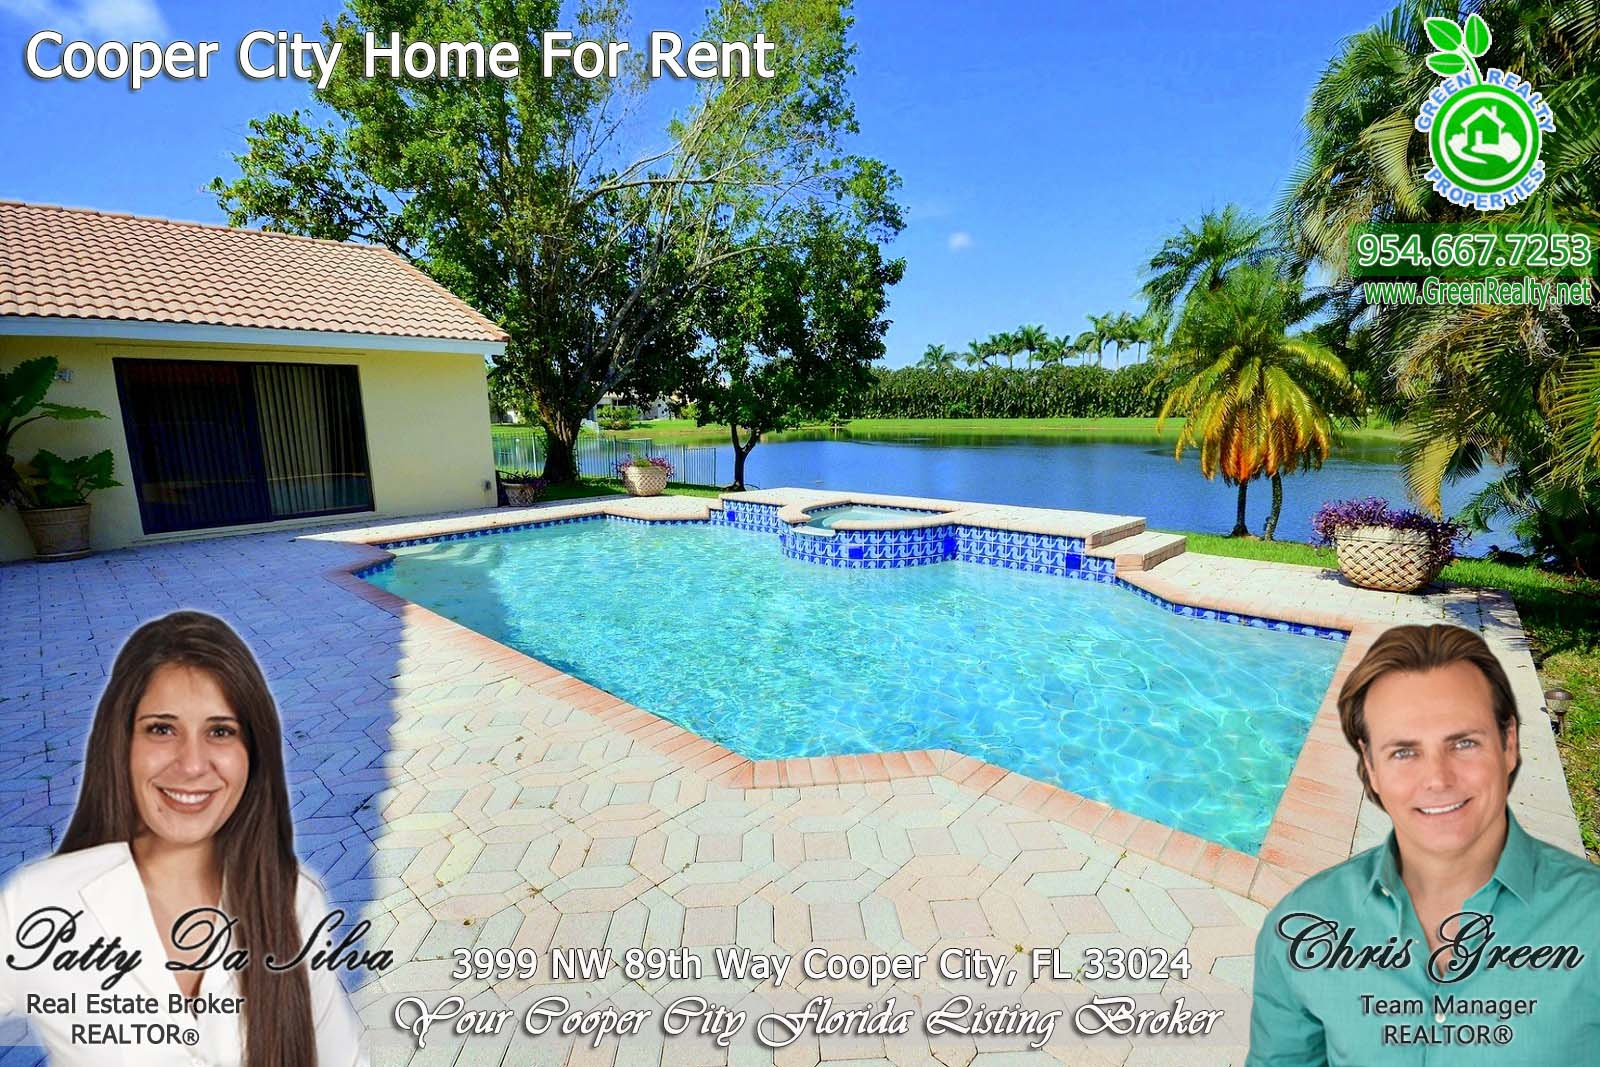 44 Cooper City Homes For Sale (4)